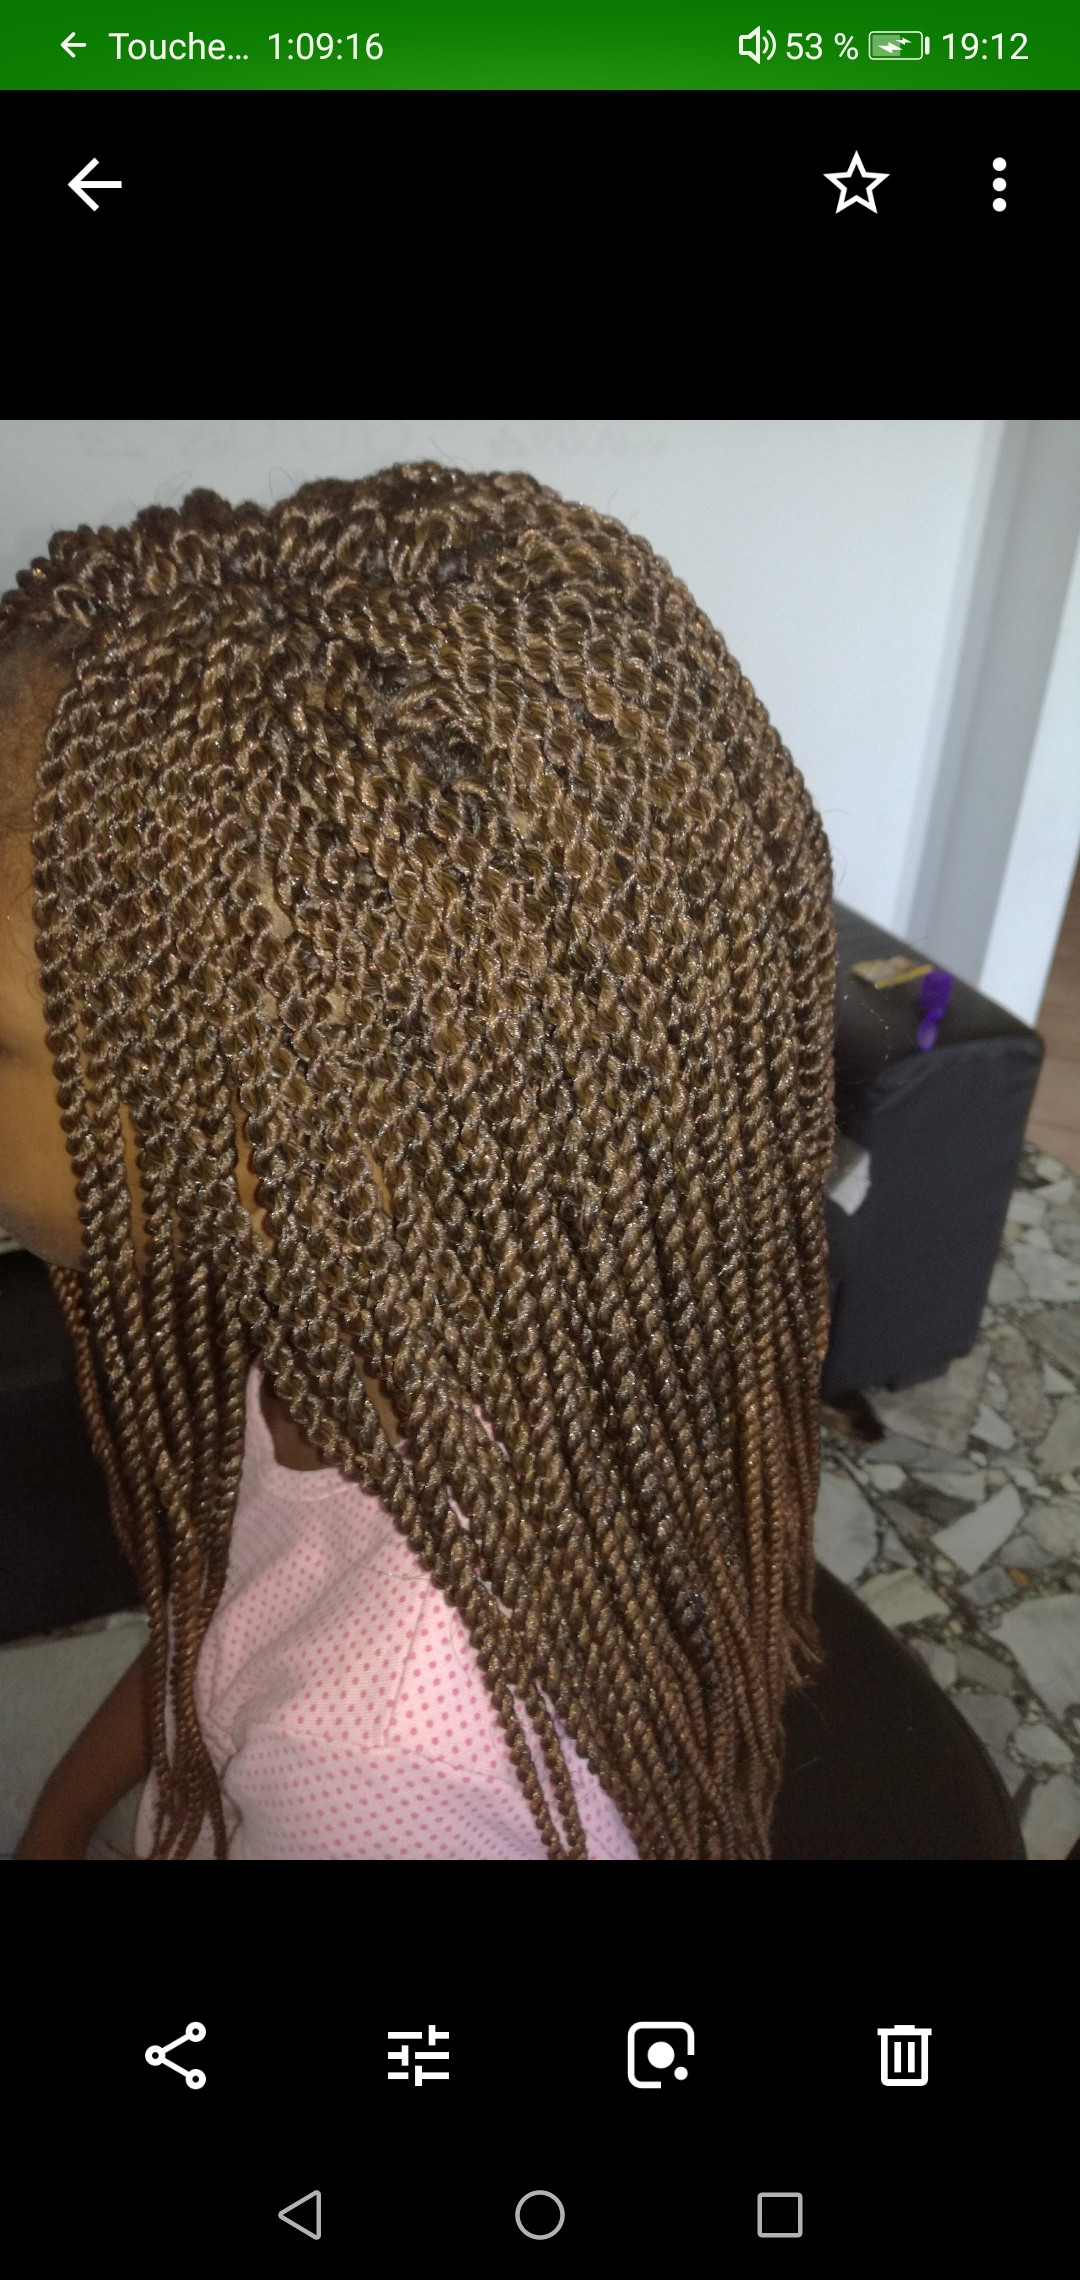 salon de coiffure afro tresse tresses box braids crochet braids vanilles tissages paris 75 77 78 91 92 93 94 95 LZVIYVAV